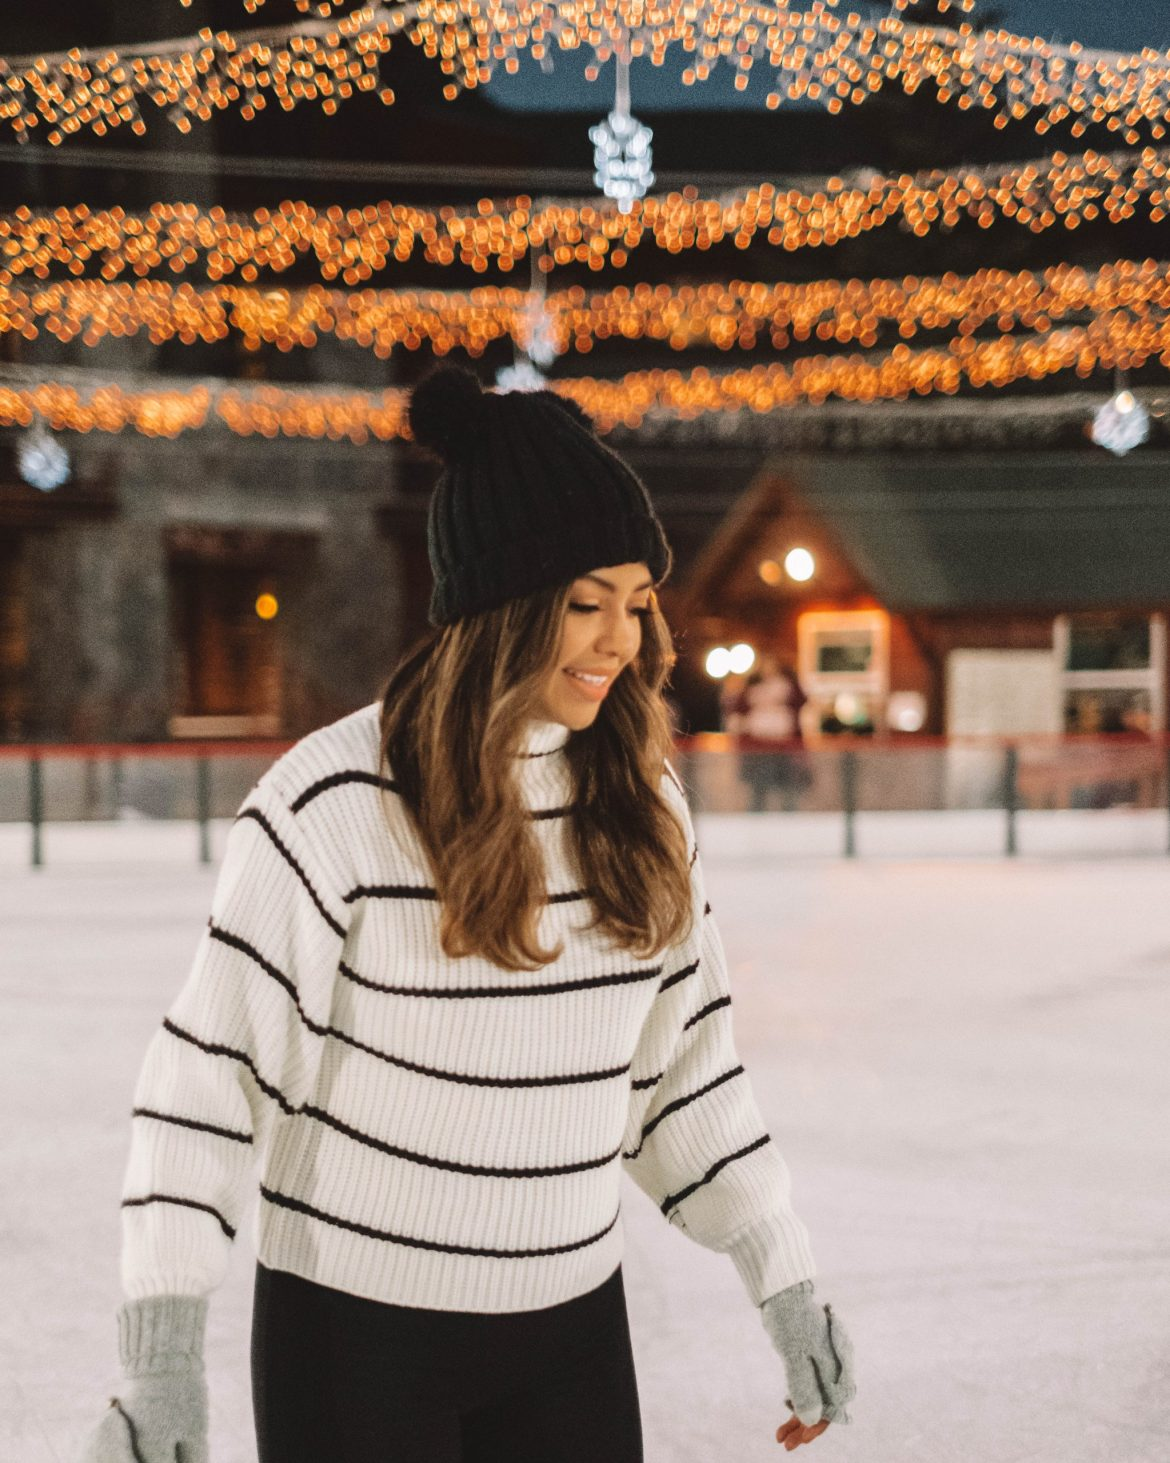 ice skating in south lake tahoe, fun things to do in South Lake Tahoe during winter - cindyycheeks.com